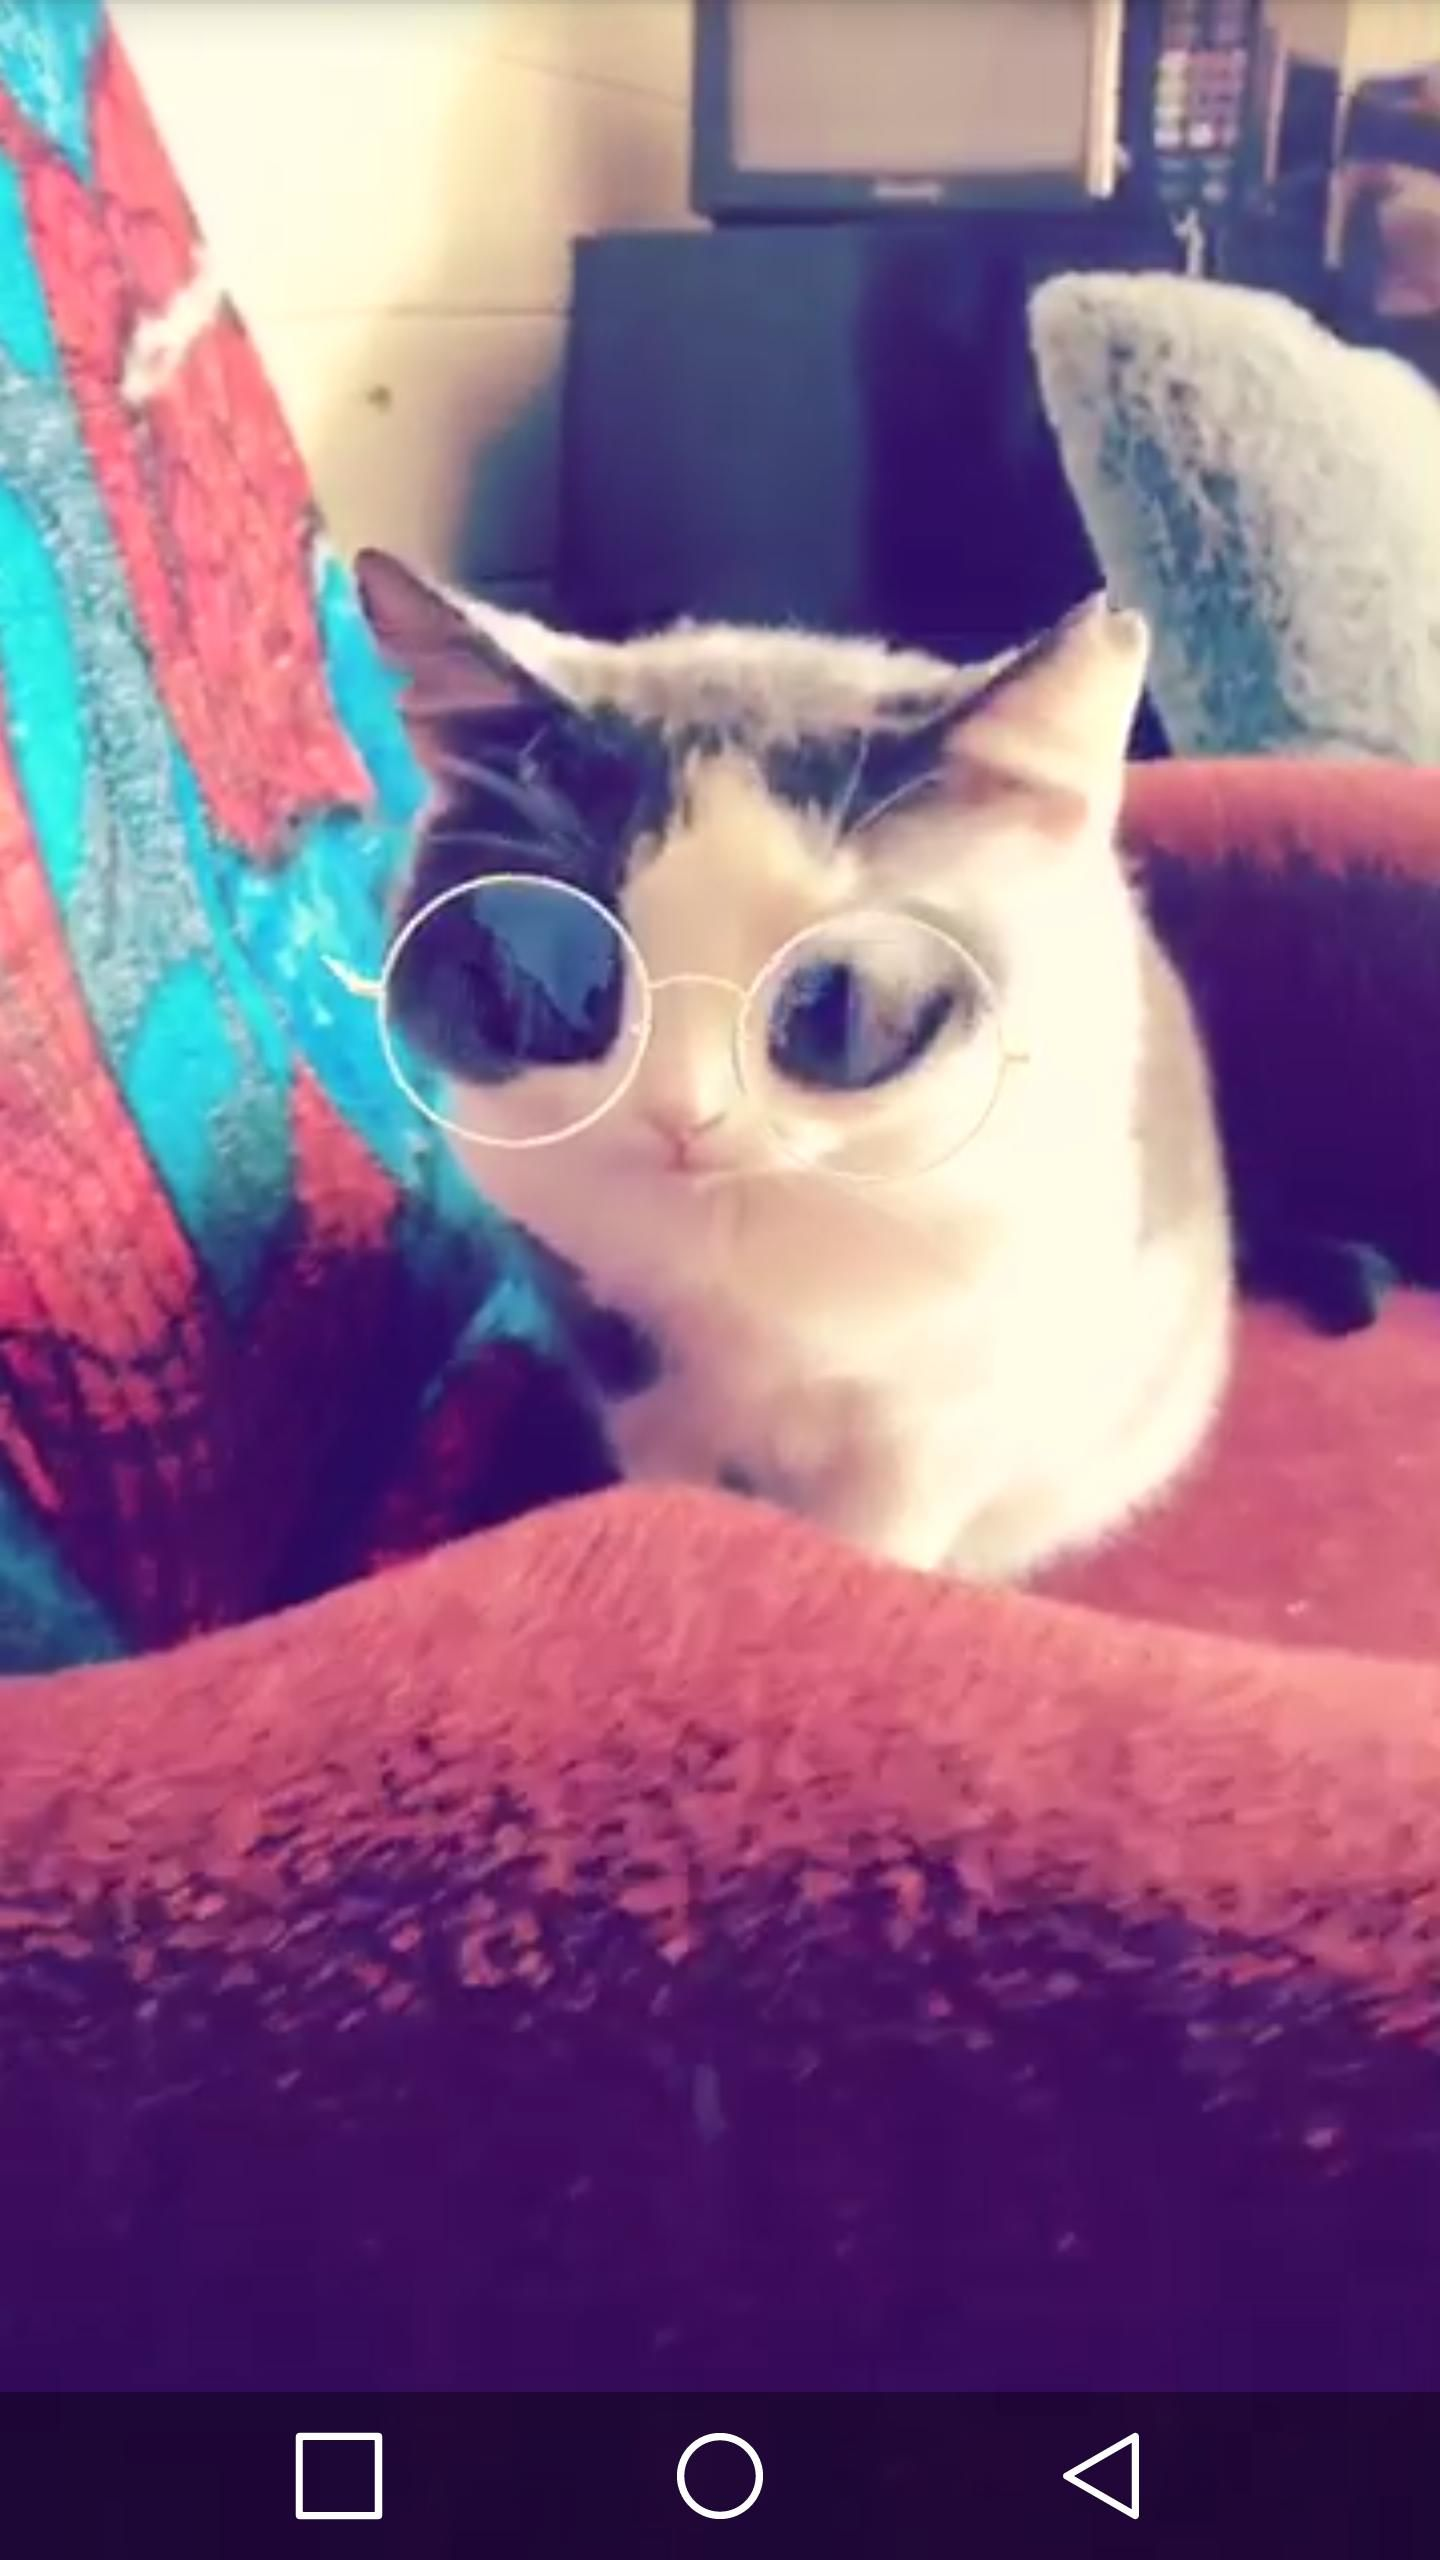 http//ift.tt/2f1l4HS sister's cat with a Snapchat filter